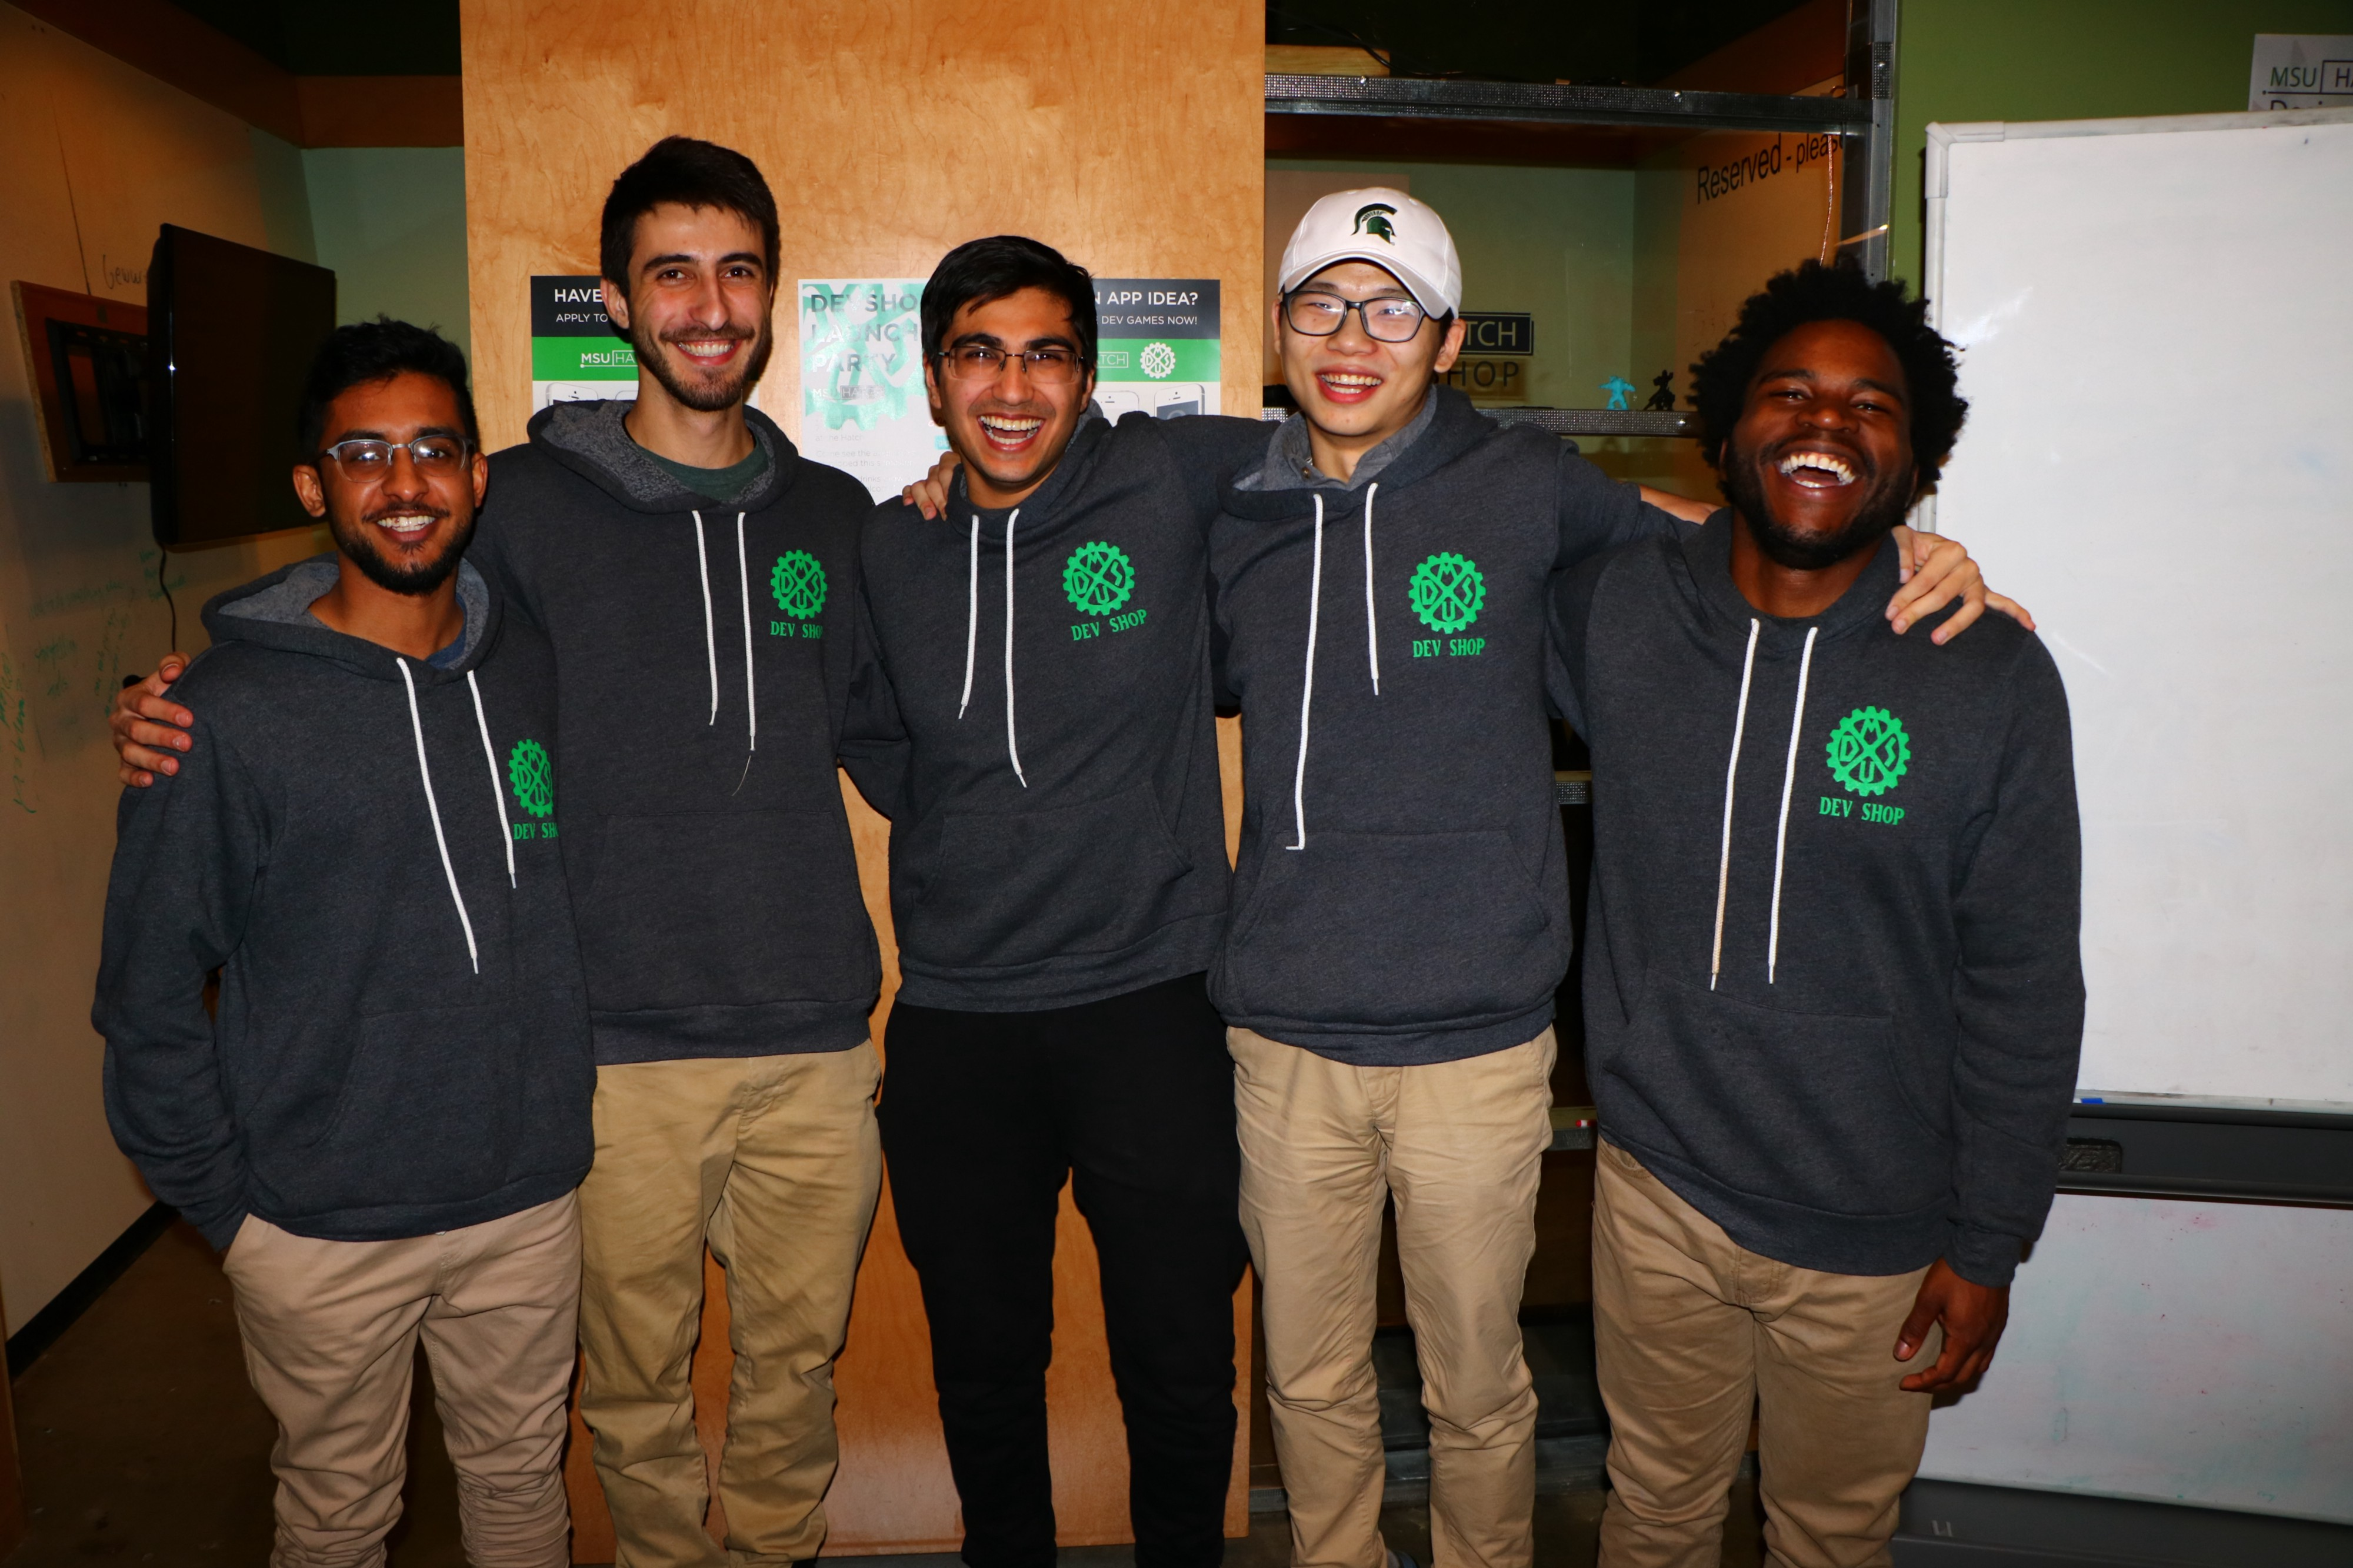 Msu Student Info >> A Team Of Msu Student Developers Created 4 Apps In Only 2